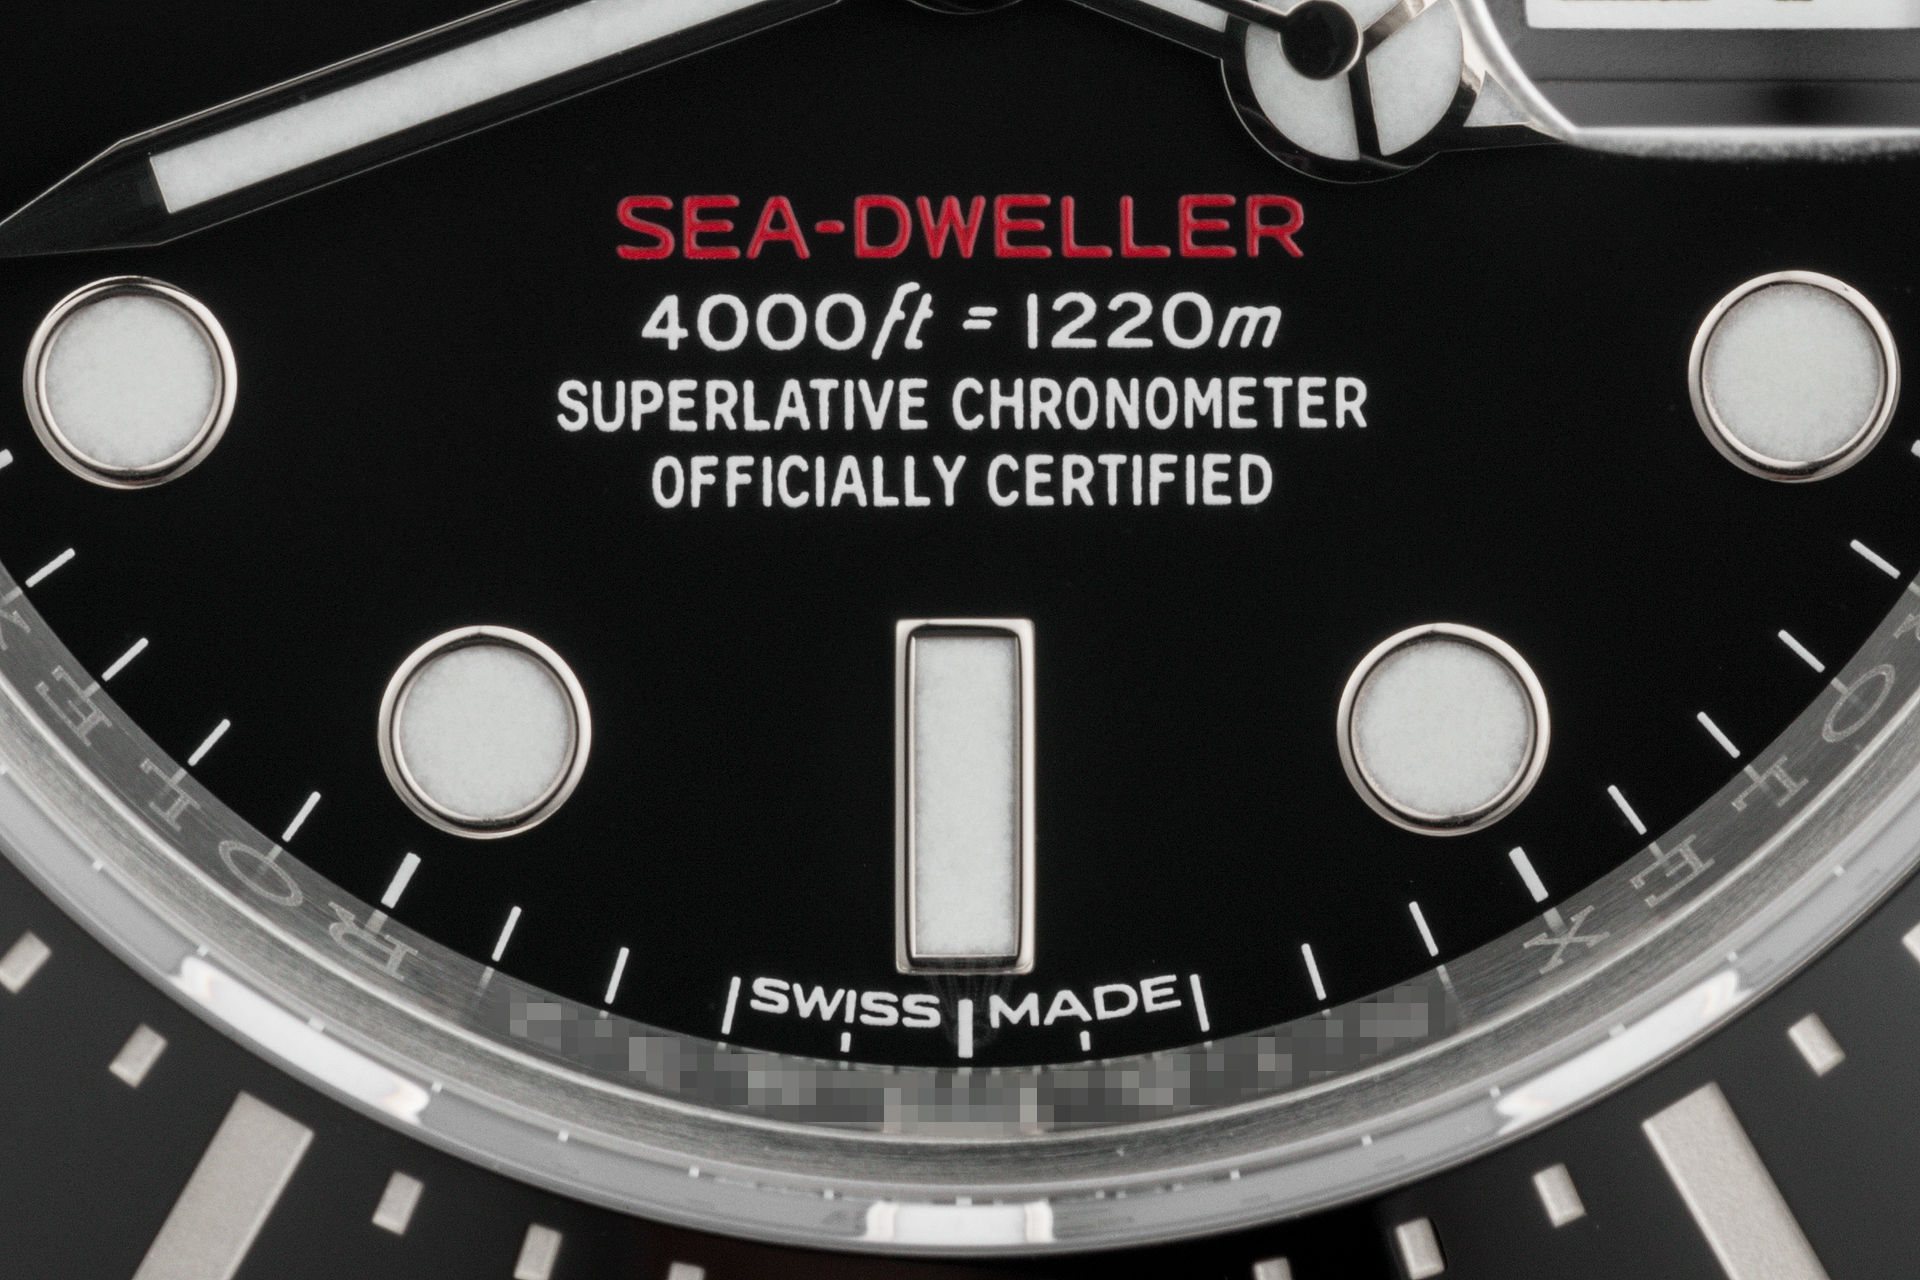 ref 126600 | 5 Year Warranty 'Anniversary Model' | Rolex Sea-Dweller